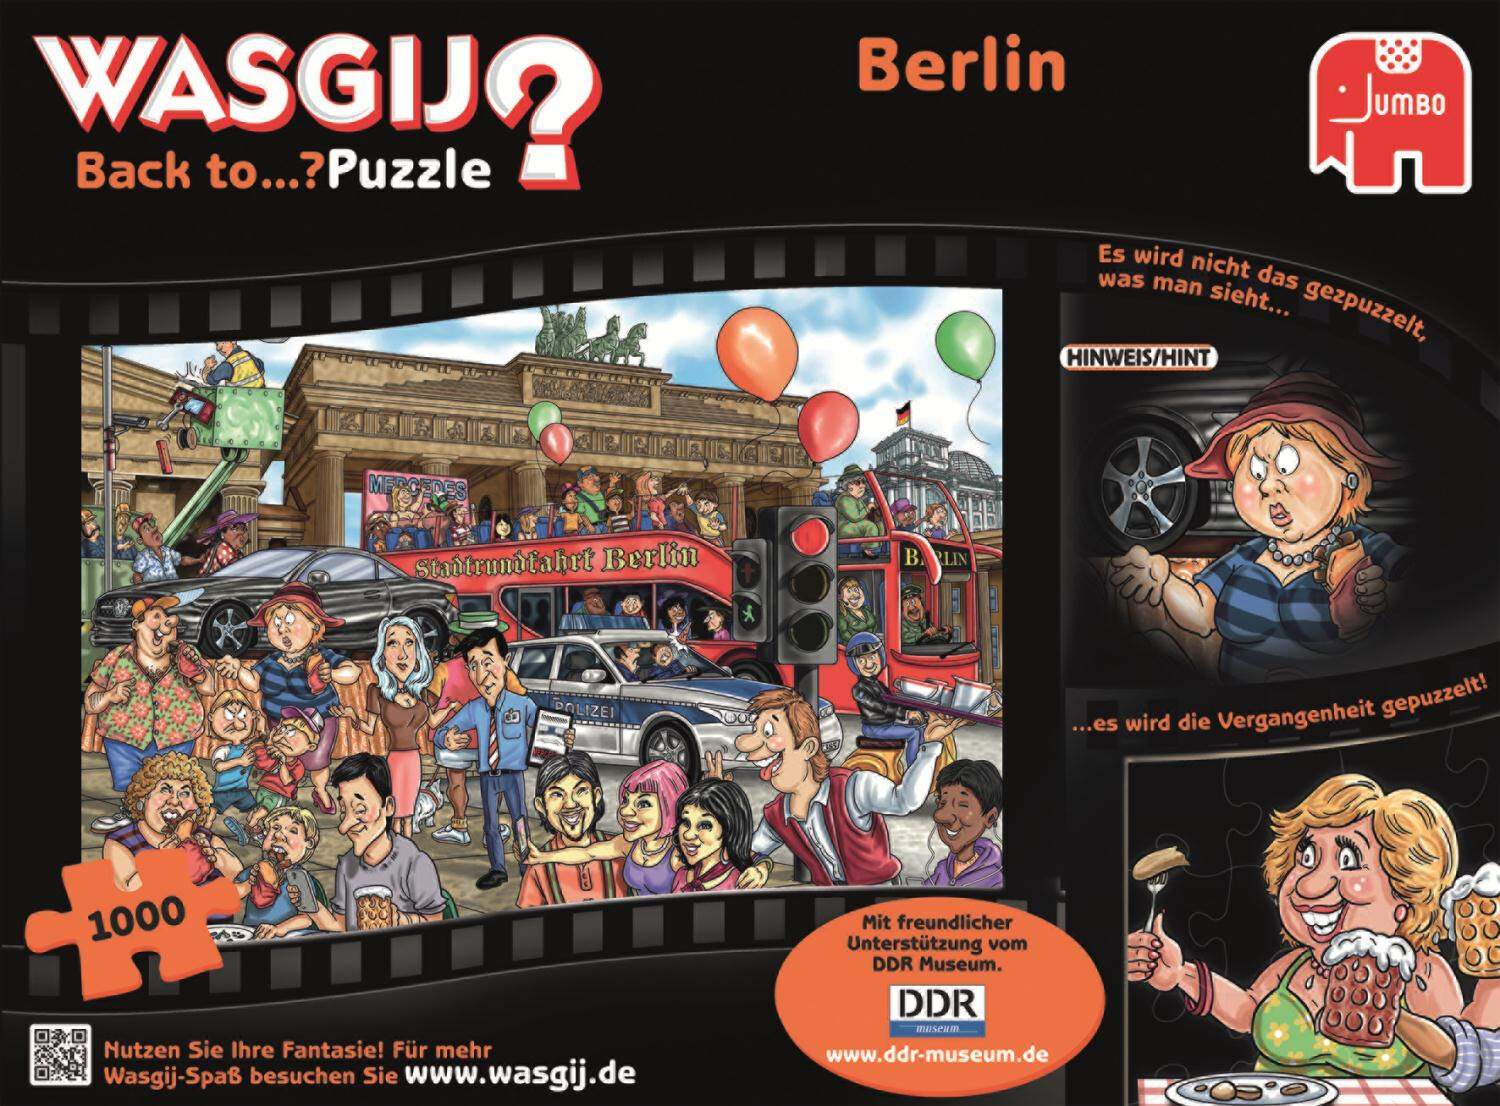 Berlin Puzzle Jumbo Wasgij Puzzle Back To Berlin 1000 Pcs Comics 19117